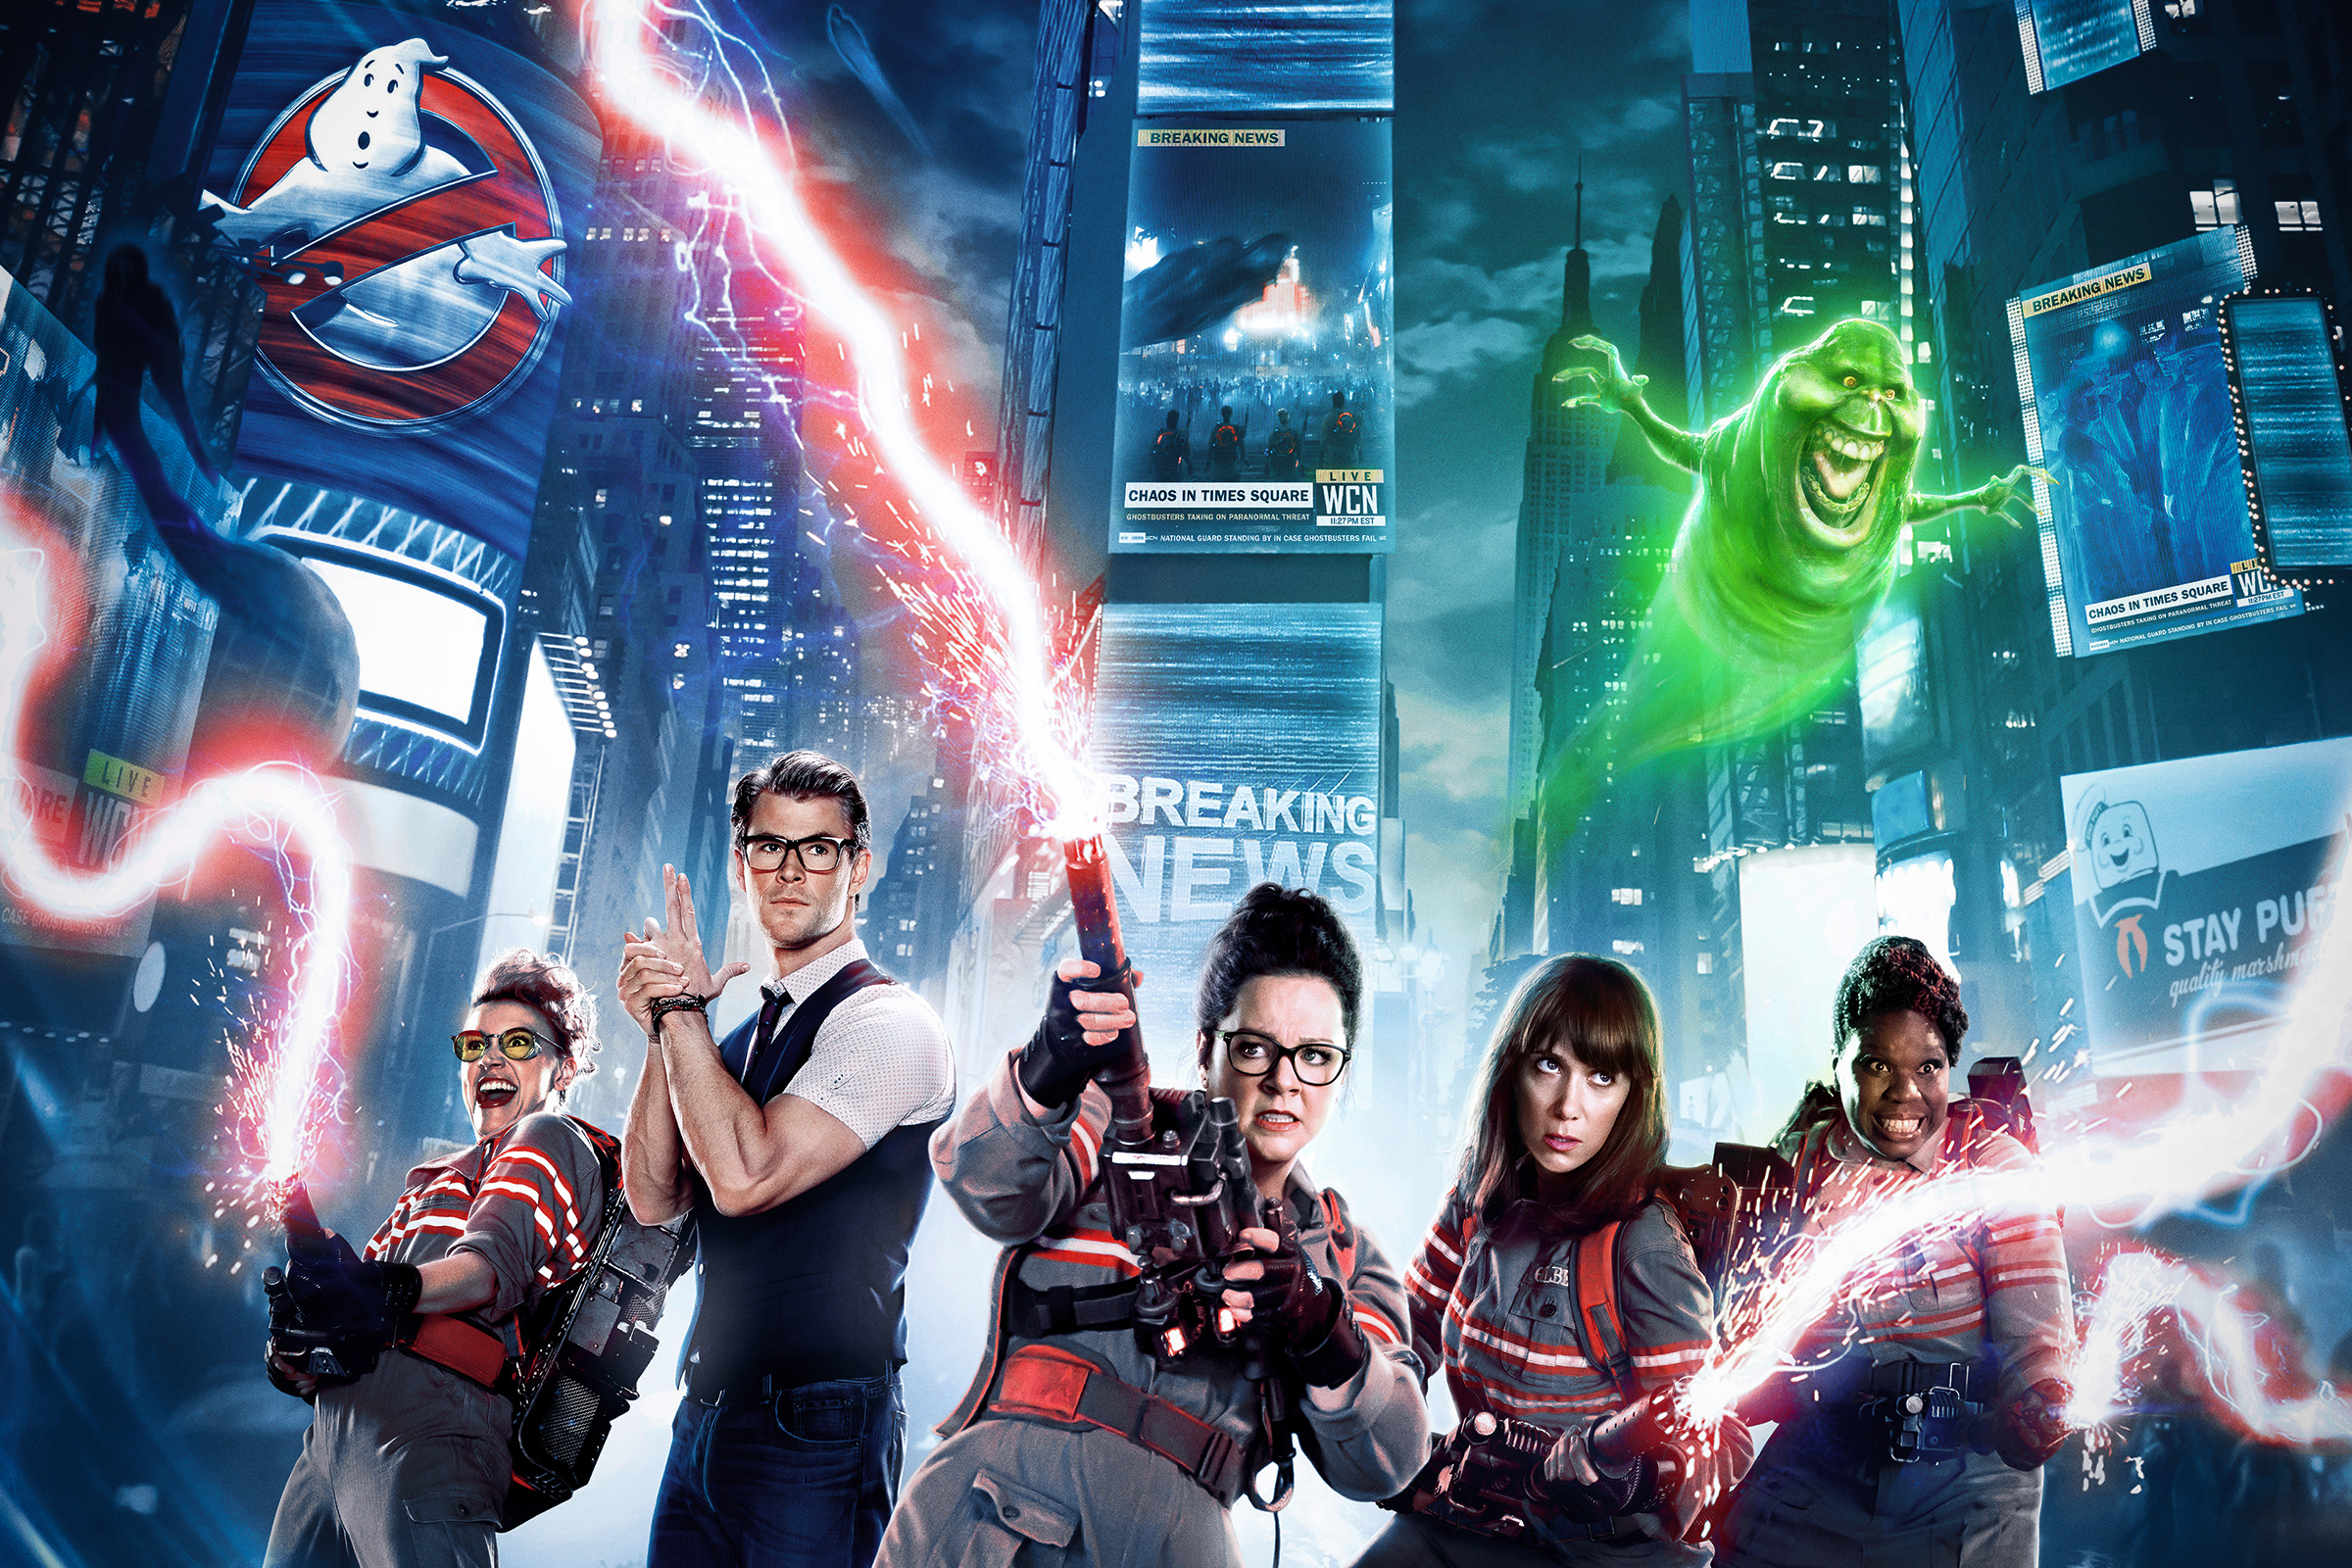 2. Ghostbusters (2016): All the characters were wonderful, and everyone would love to watch a movie sequel.